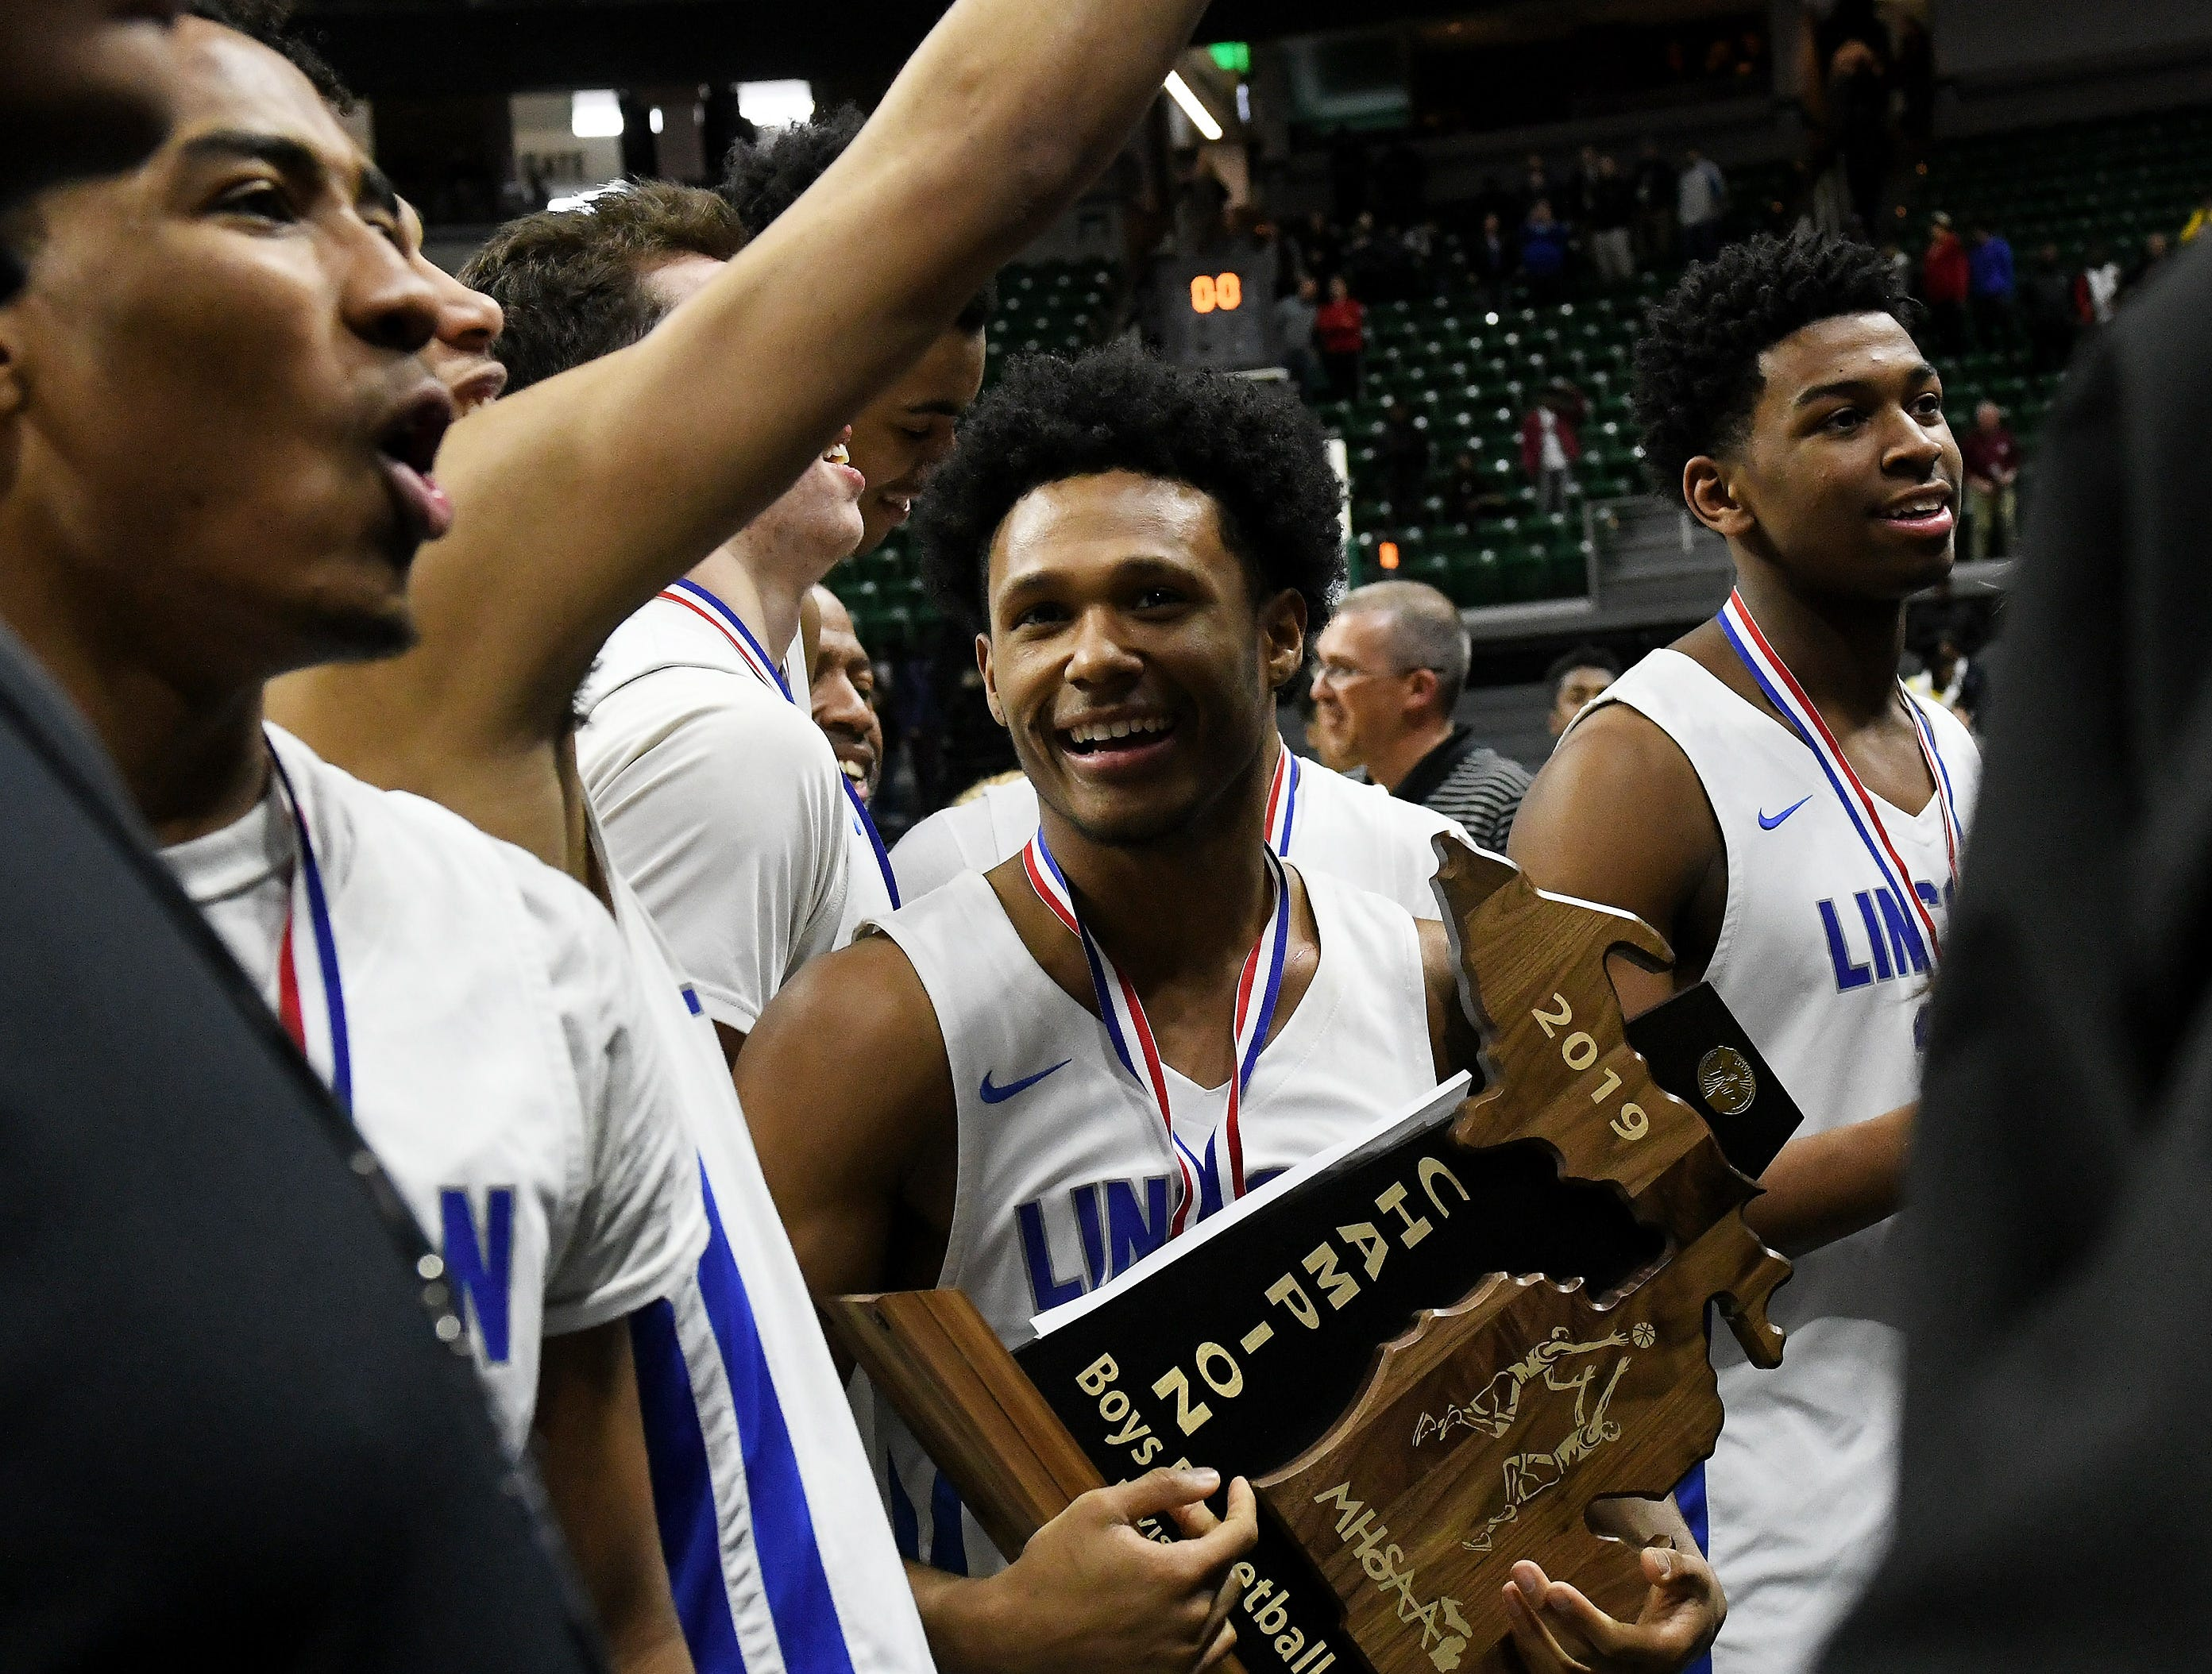 Lincoln guard Jalen Fisher (14), who hit the game-winner, holds the trophy.